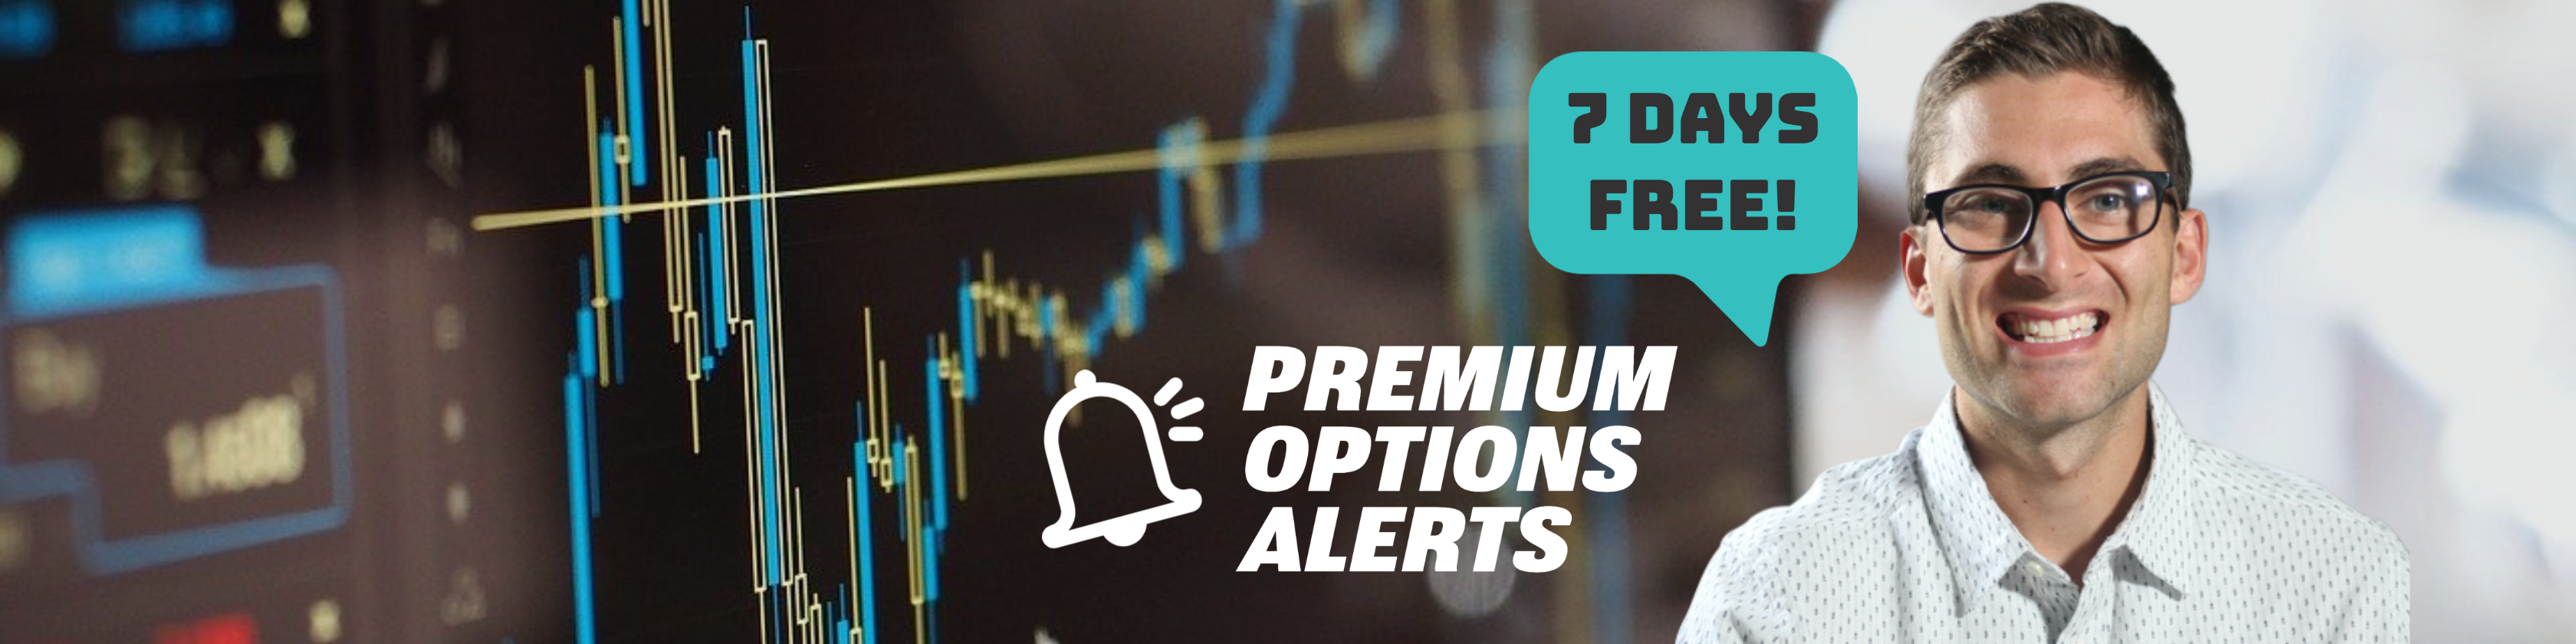 Premium Options Alert Group on Discord with Professional Options Trader Matt Giannino